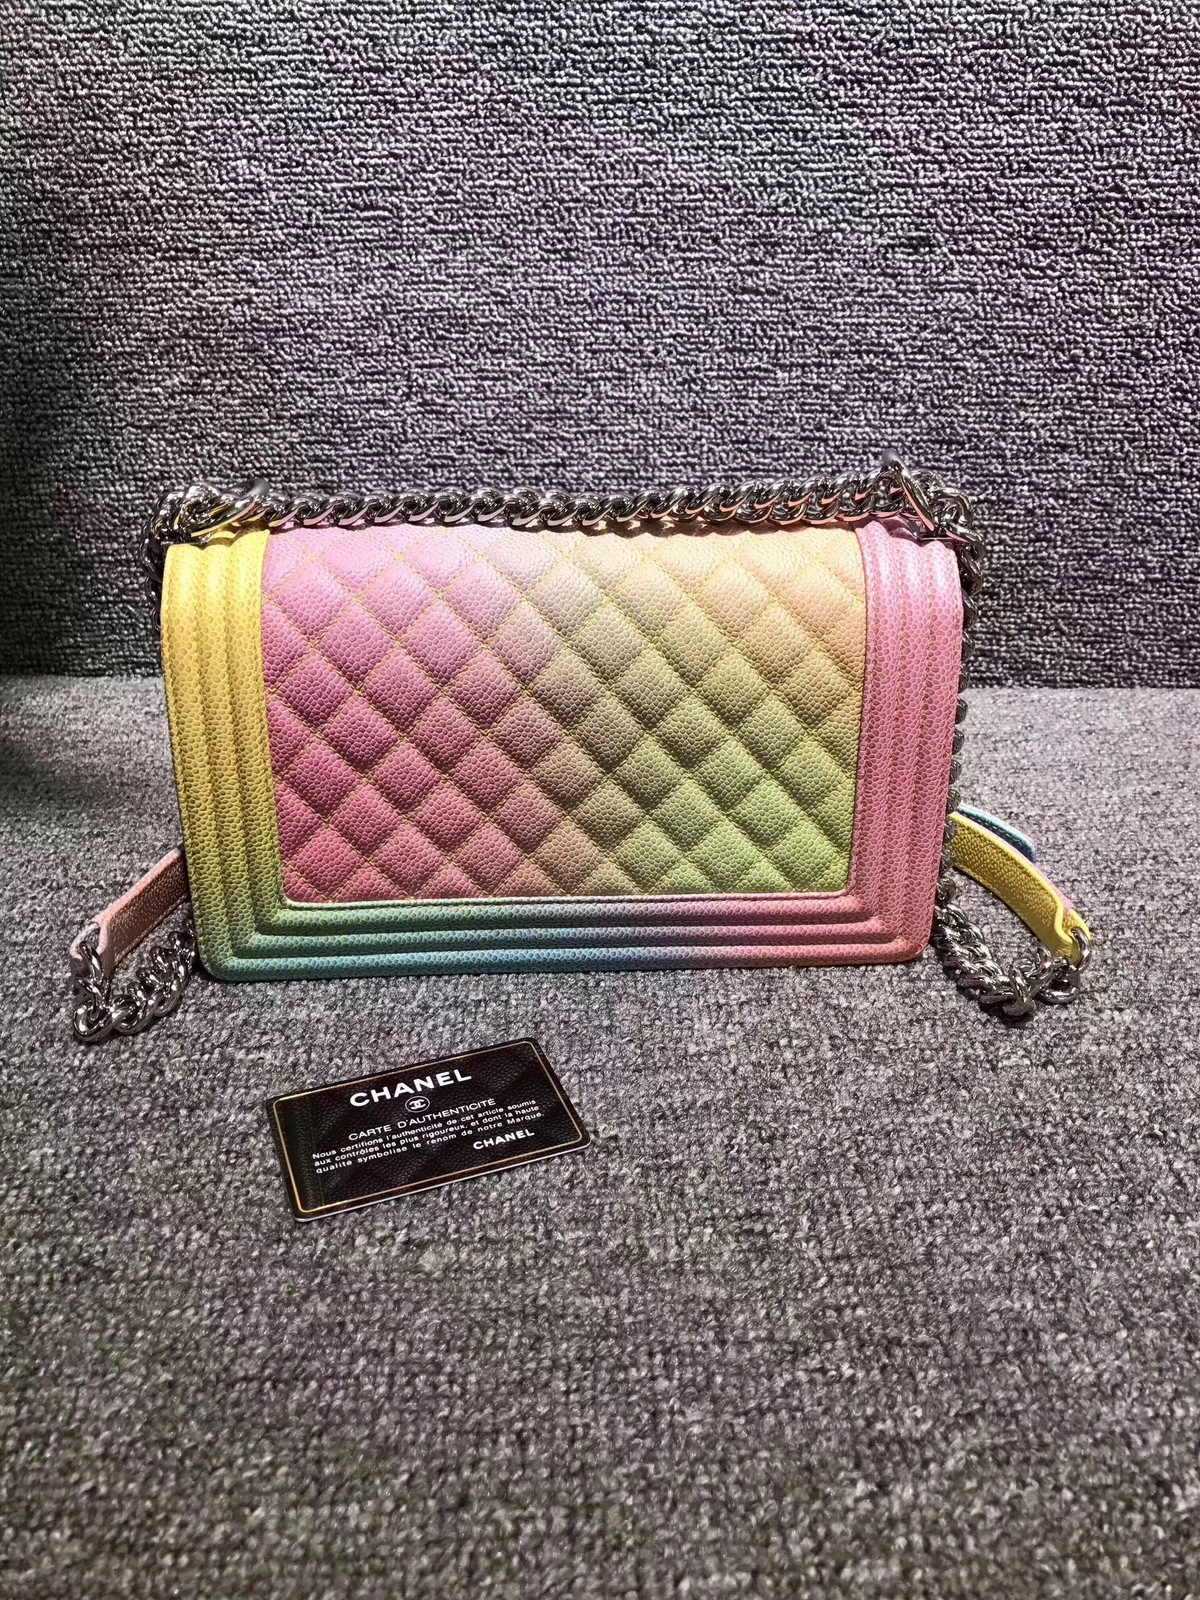 d7d95f63472704 AUTHENTIC CHANEL LIMITED EDITION RAINBOW QUILTED CAVIAR MEDIUM BOY FLAP BAG